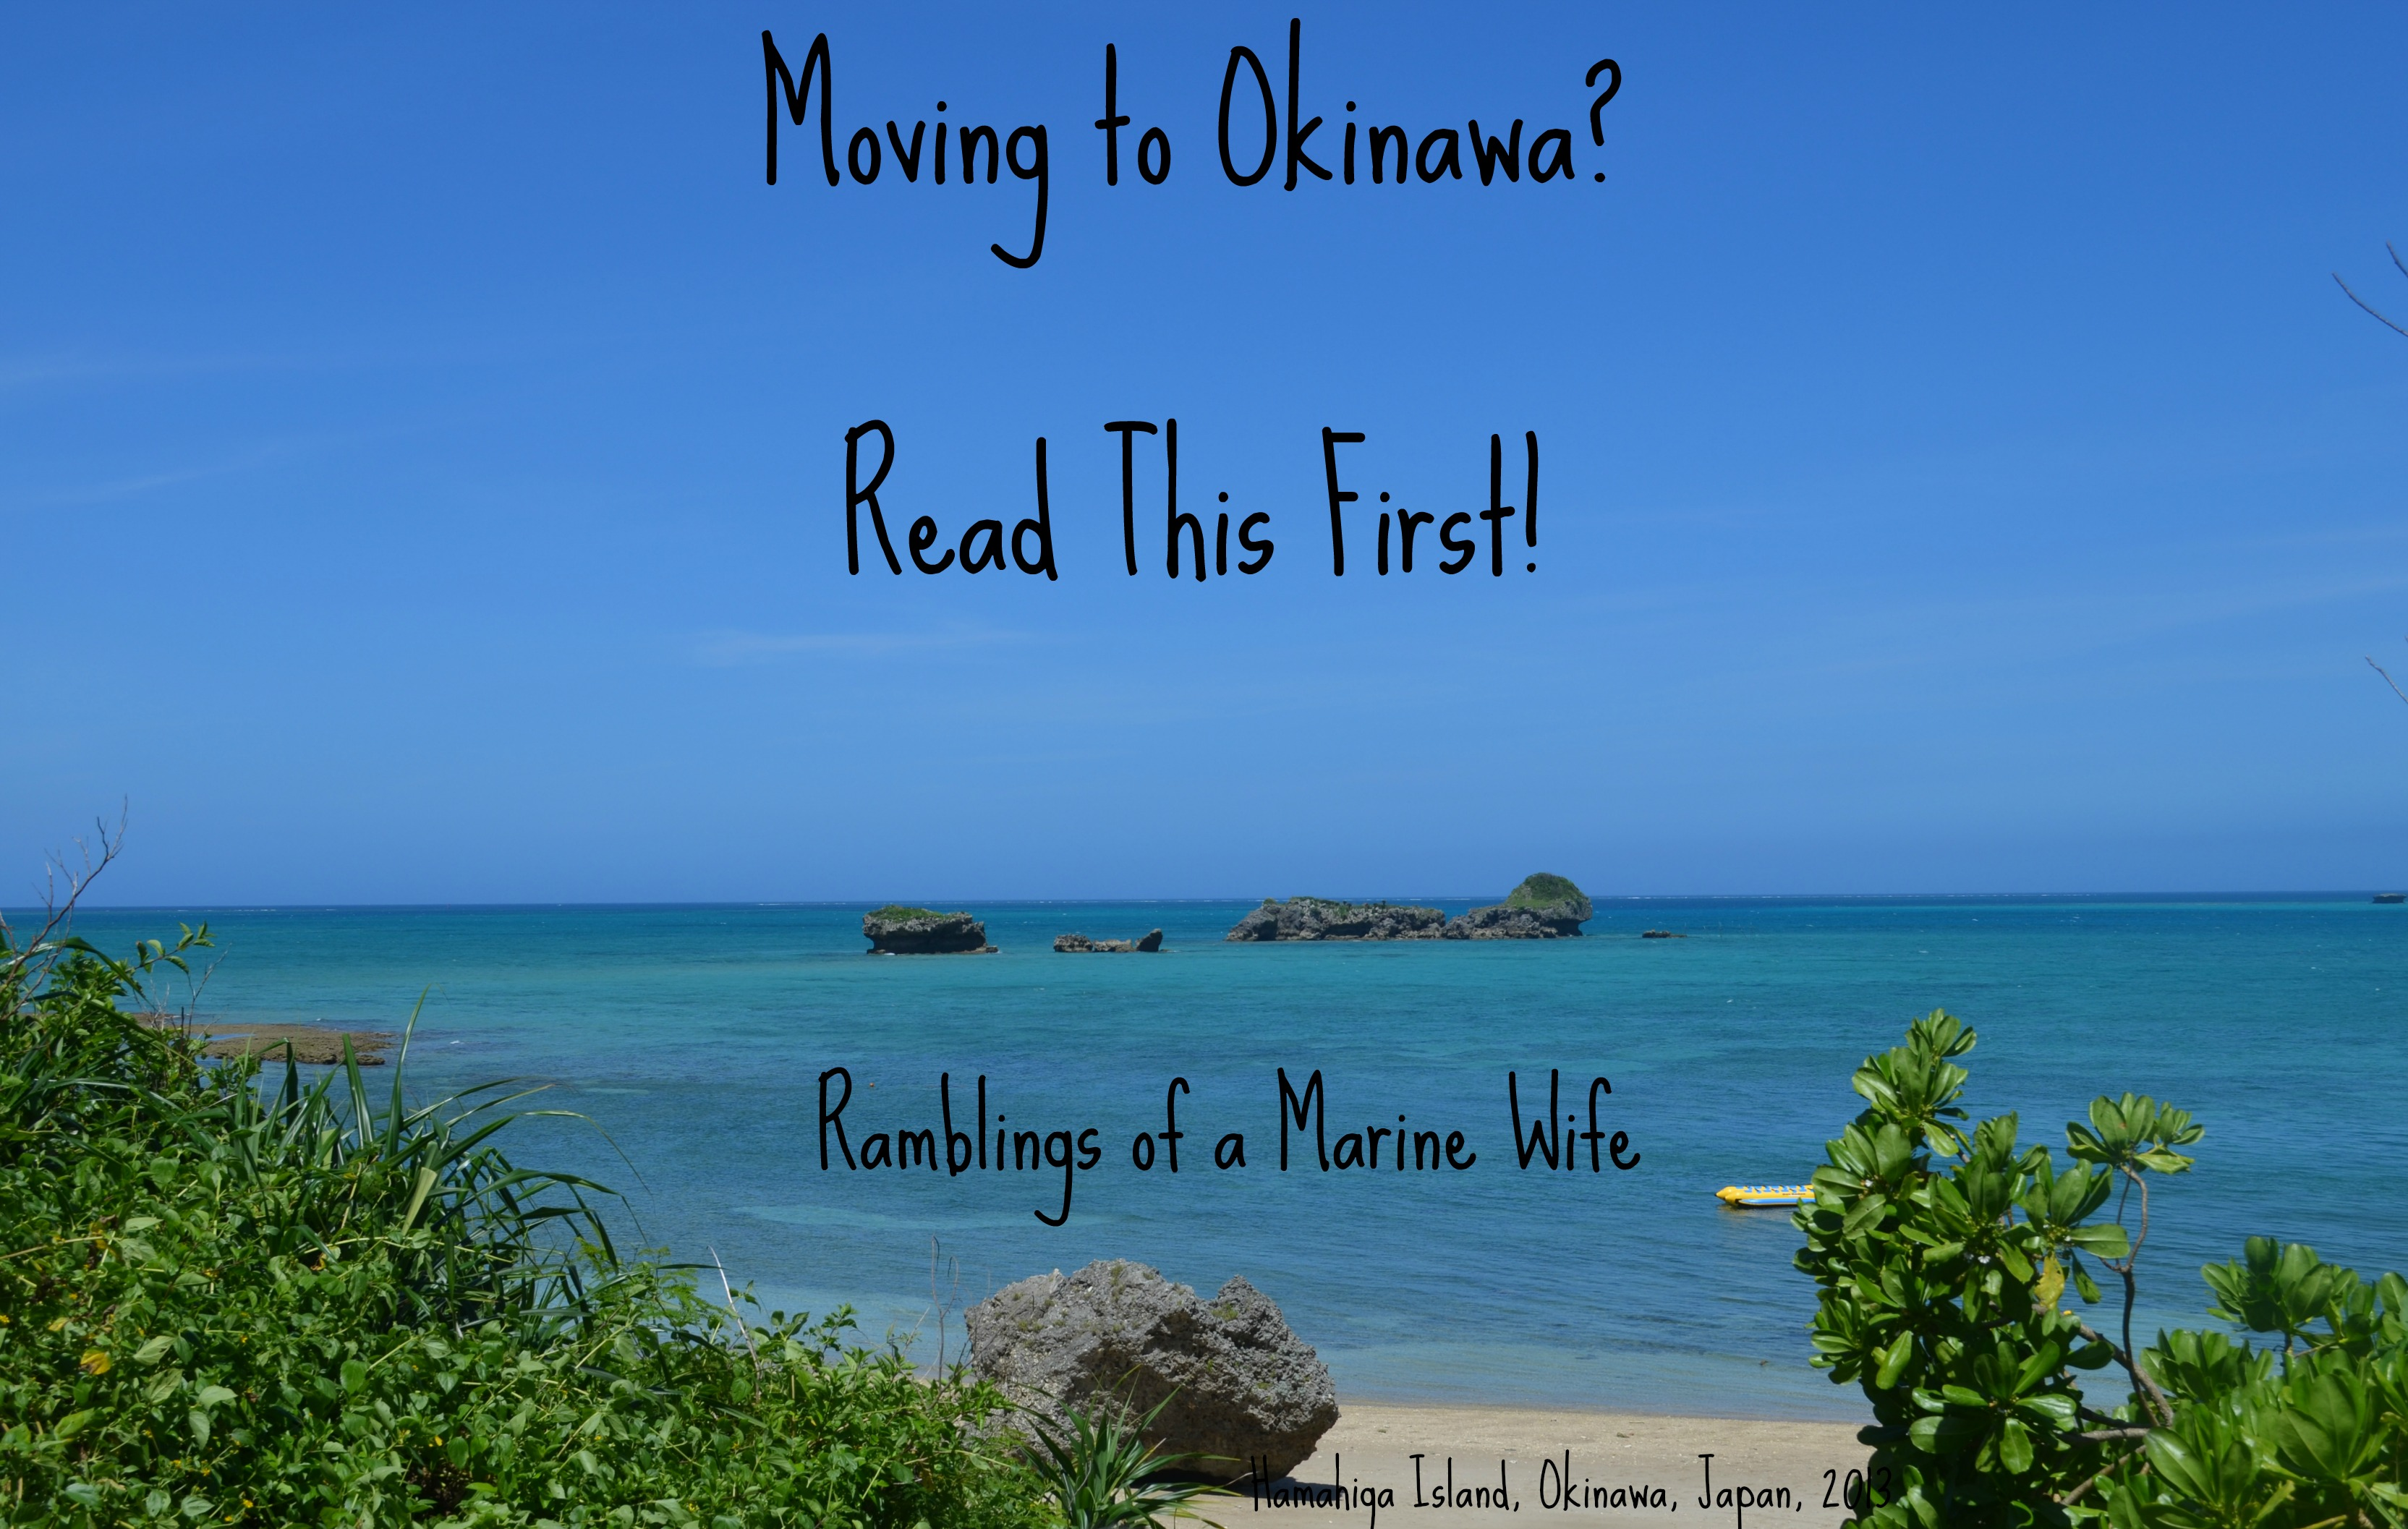 Okinawa Japan  city photos gallery : Moving to Okinawa Read This First! | Ramblings of a Marine Wife